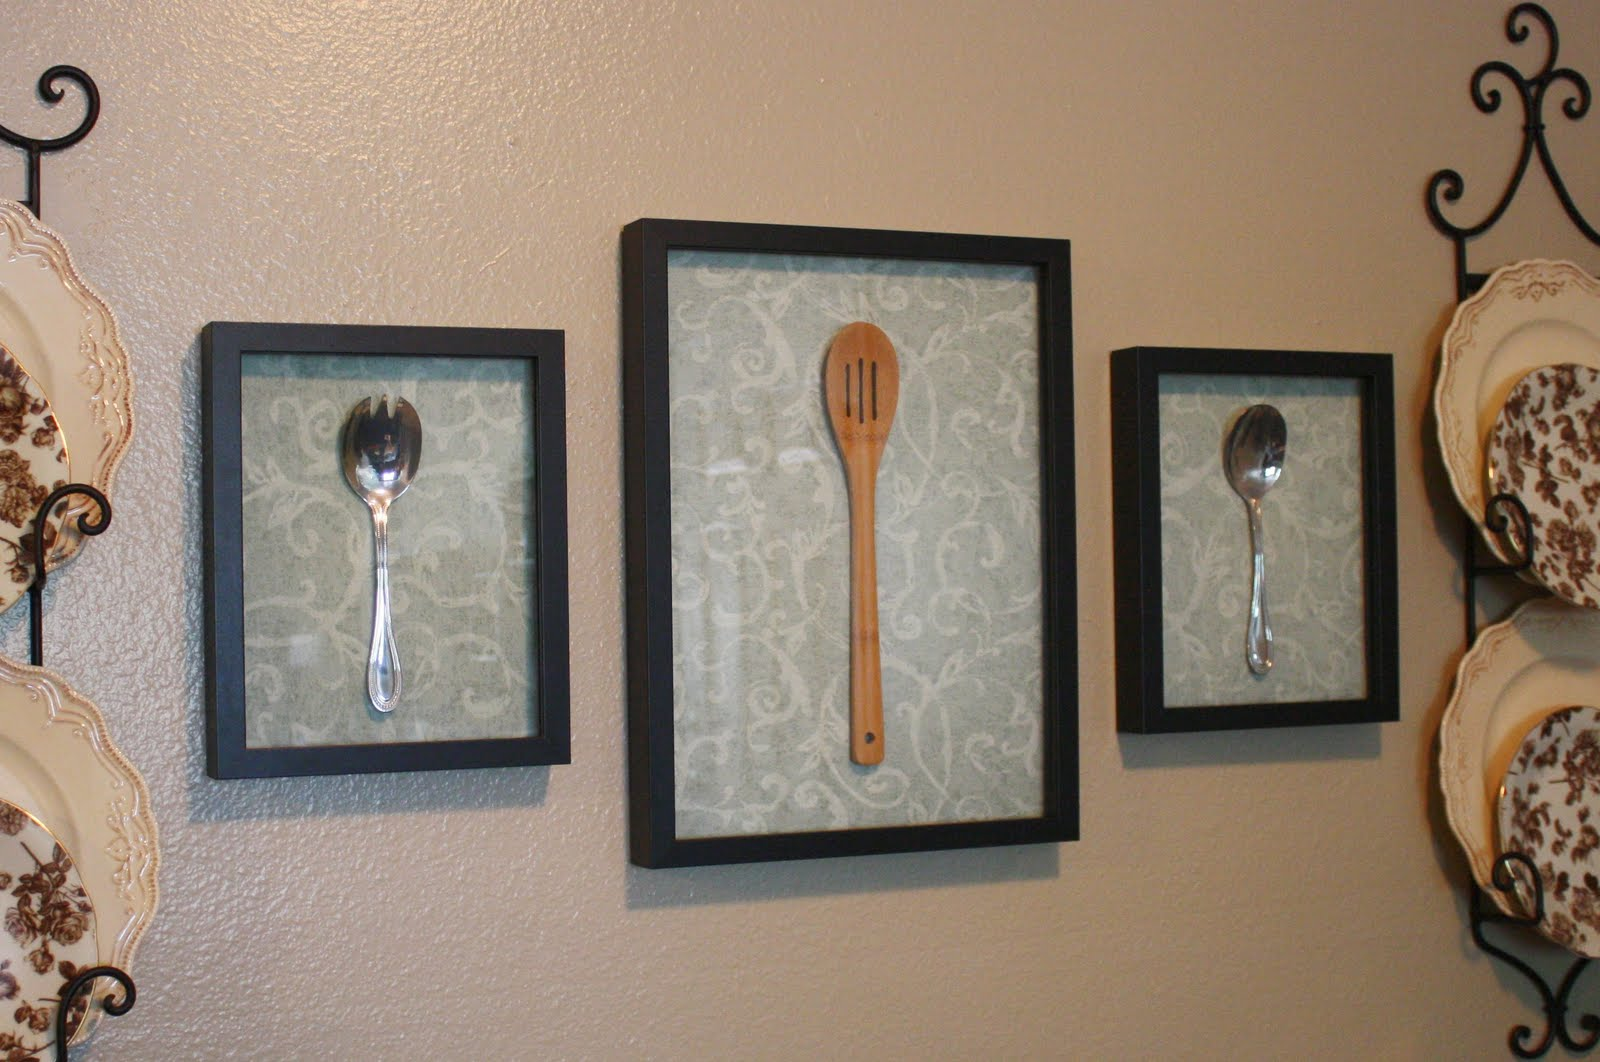 Wall Decor For Kitchen Ideas : Bayberry creek crafter diy wall art for the kitchen